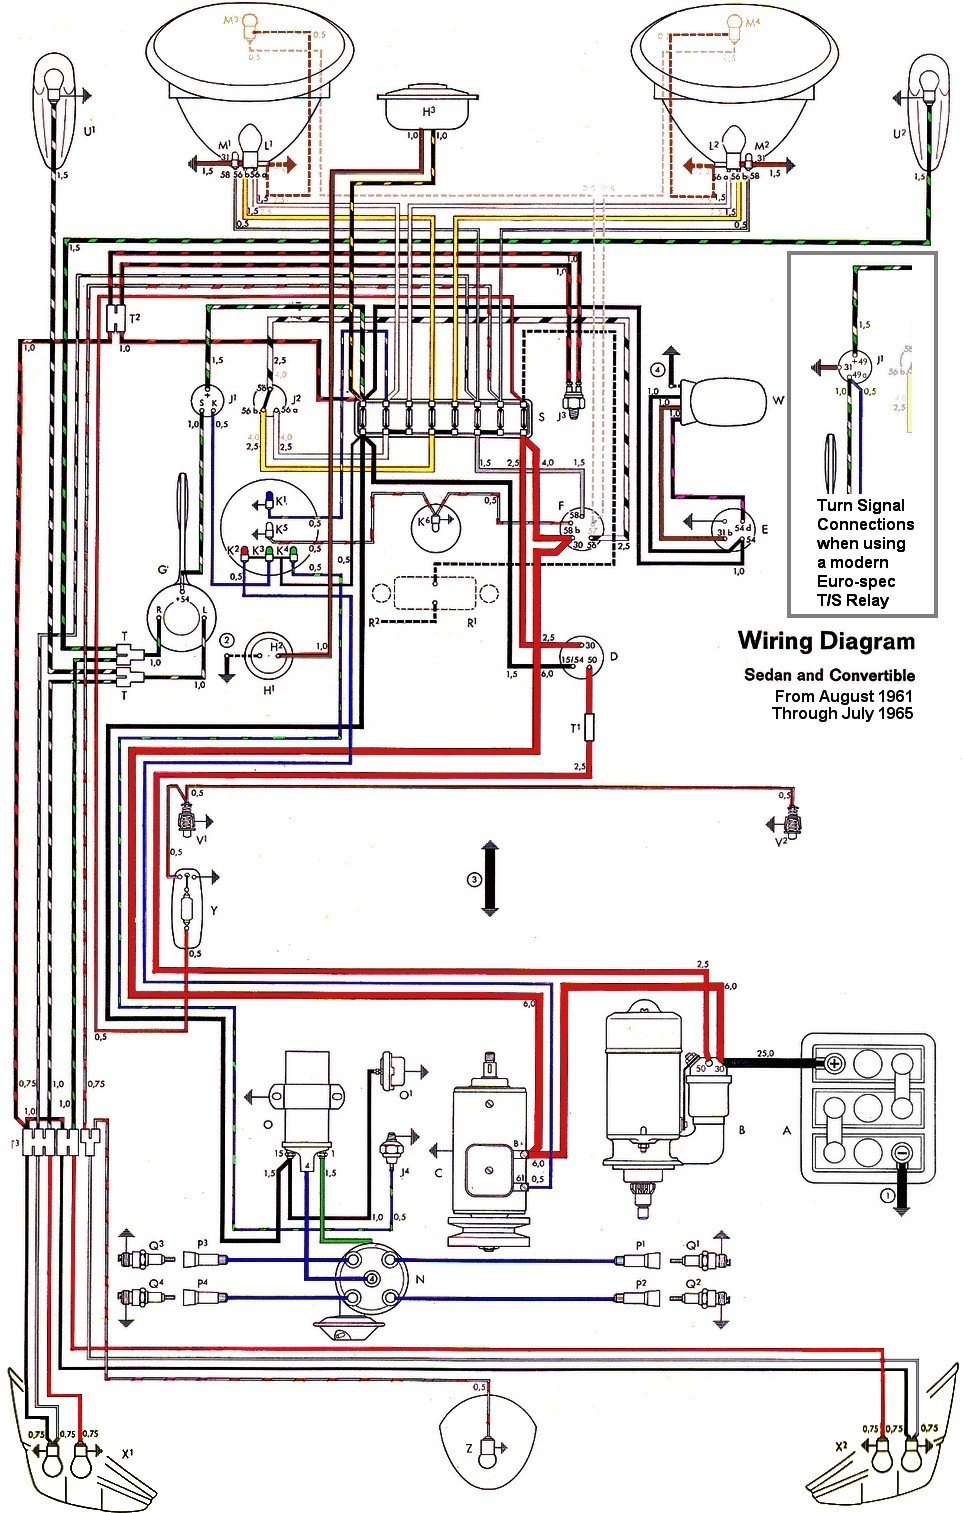 bug_62 65withinset vw wiring harness diagram cj7 wiring harness diagram \u2022 wiring 1969 vw bug wiring harness at reclaimingppi.co